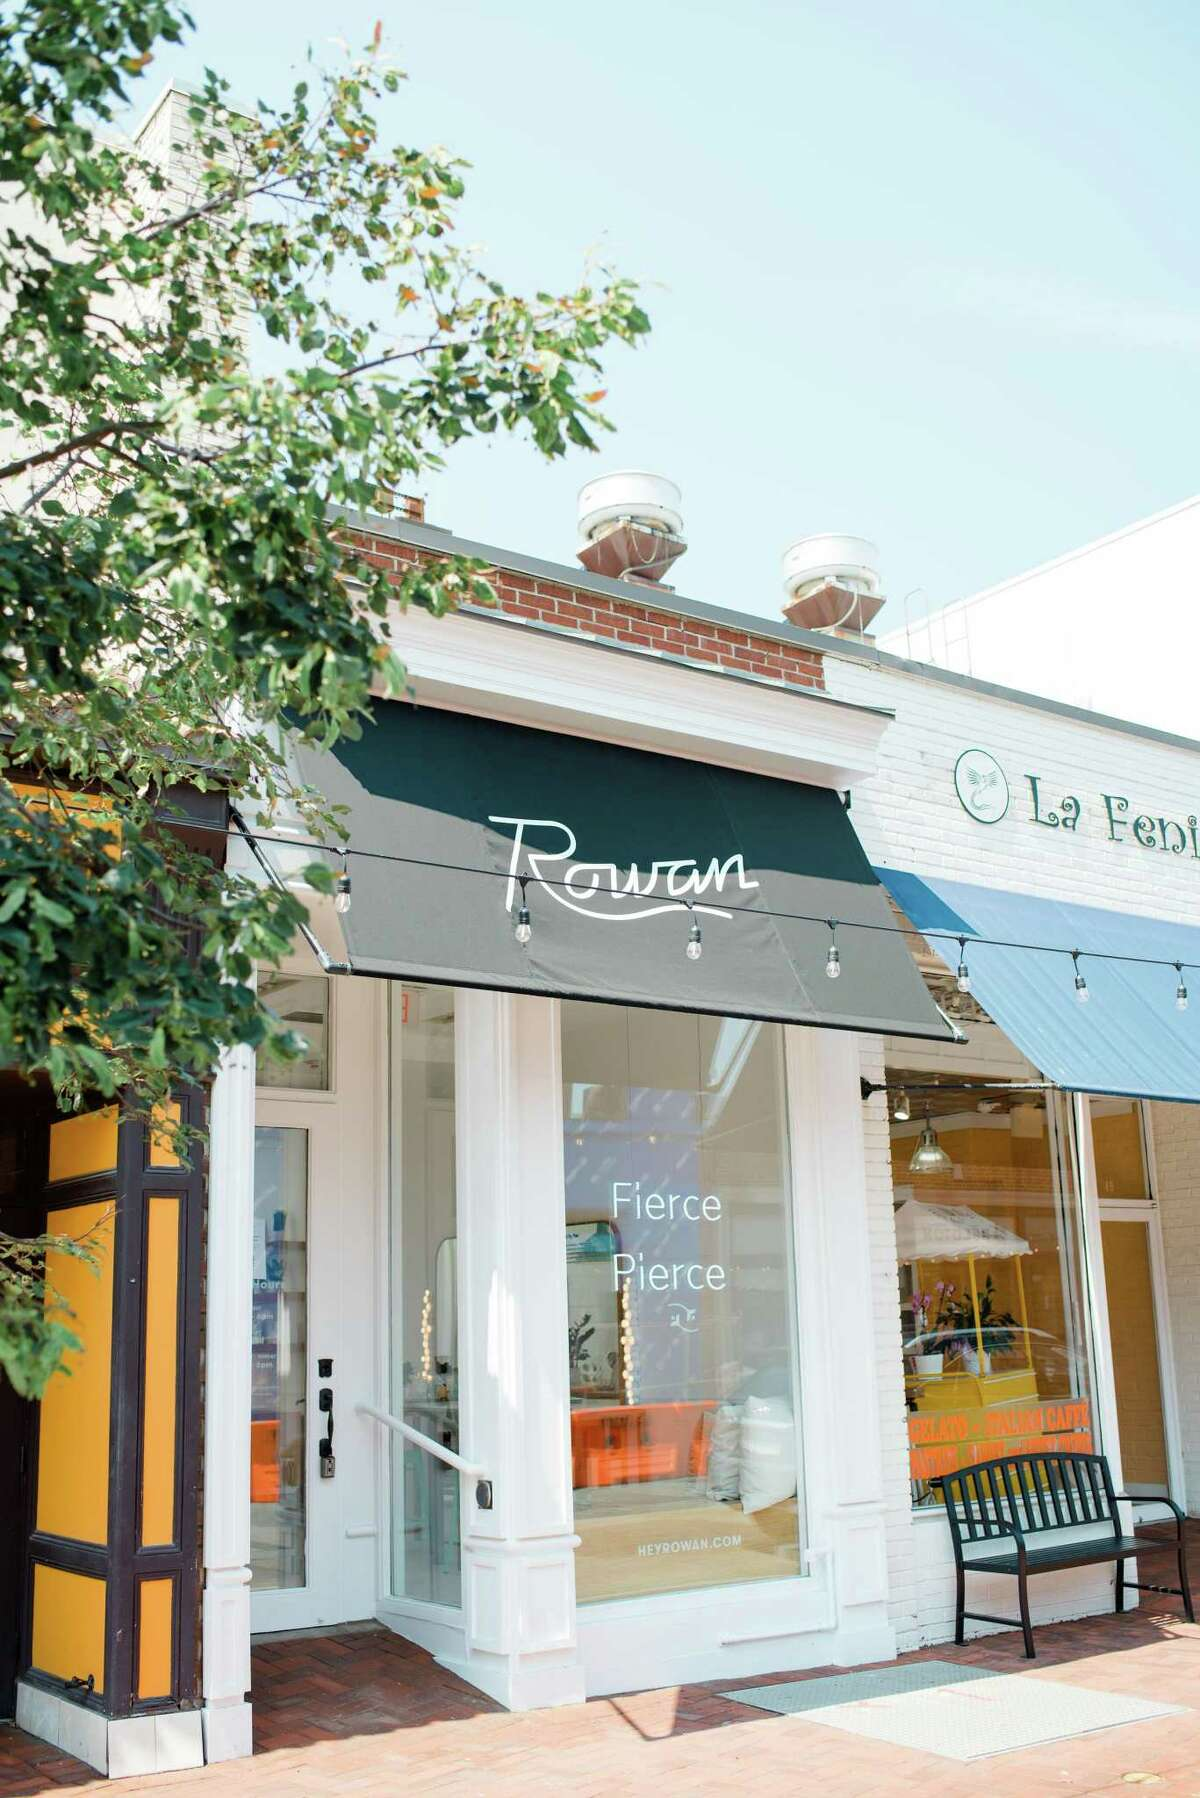 Rowan Ear Piercing Studio opened at 47 Main St. in Westport on Aug. 14, 2021, one of several new businesses in town.